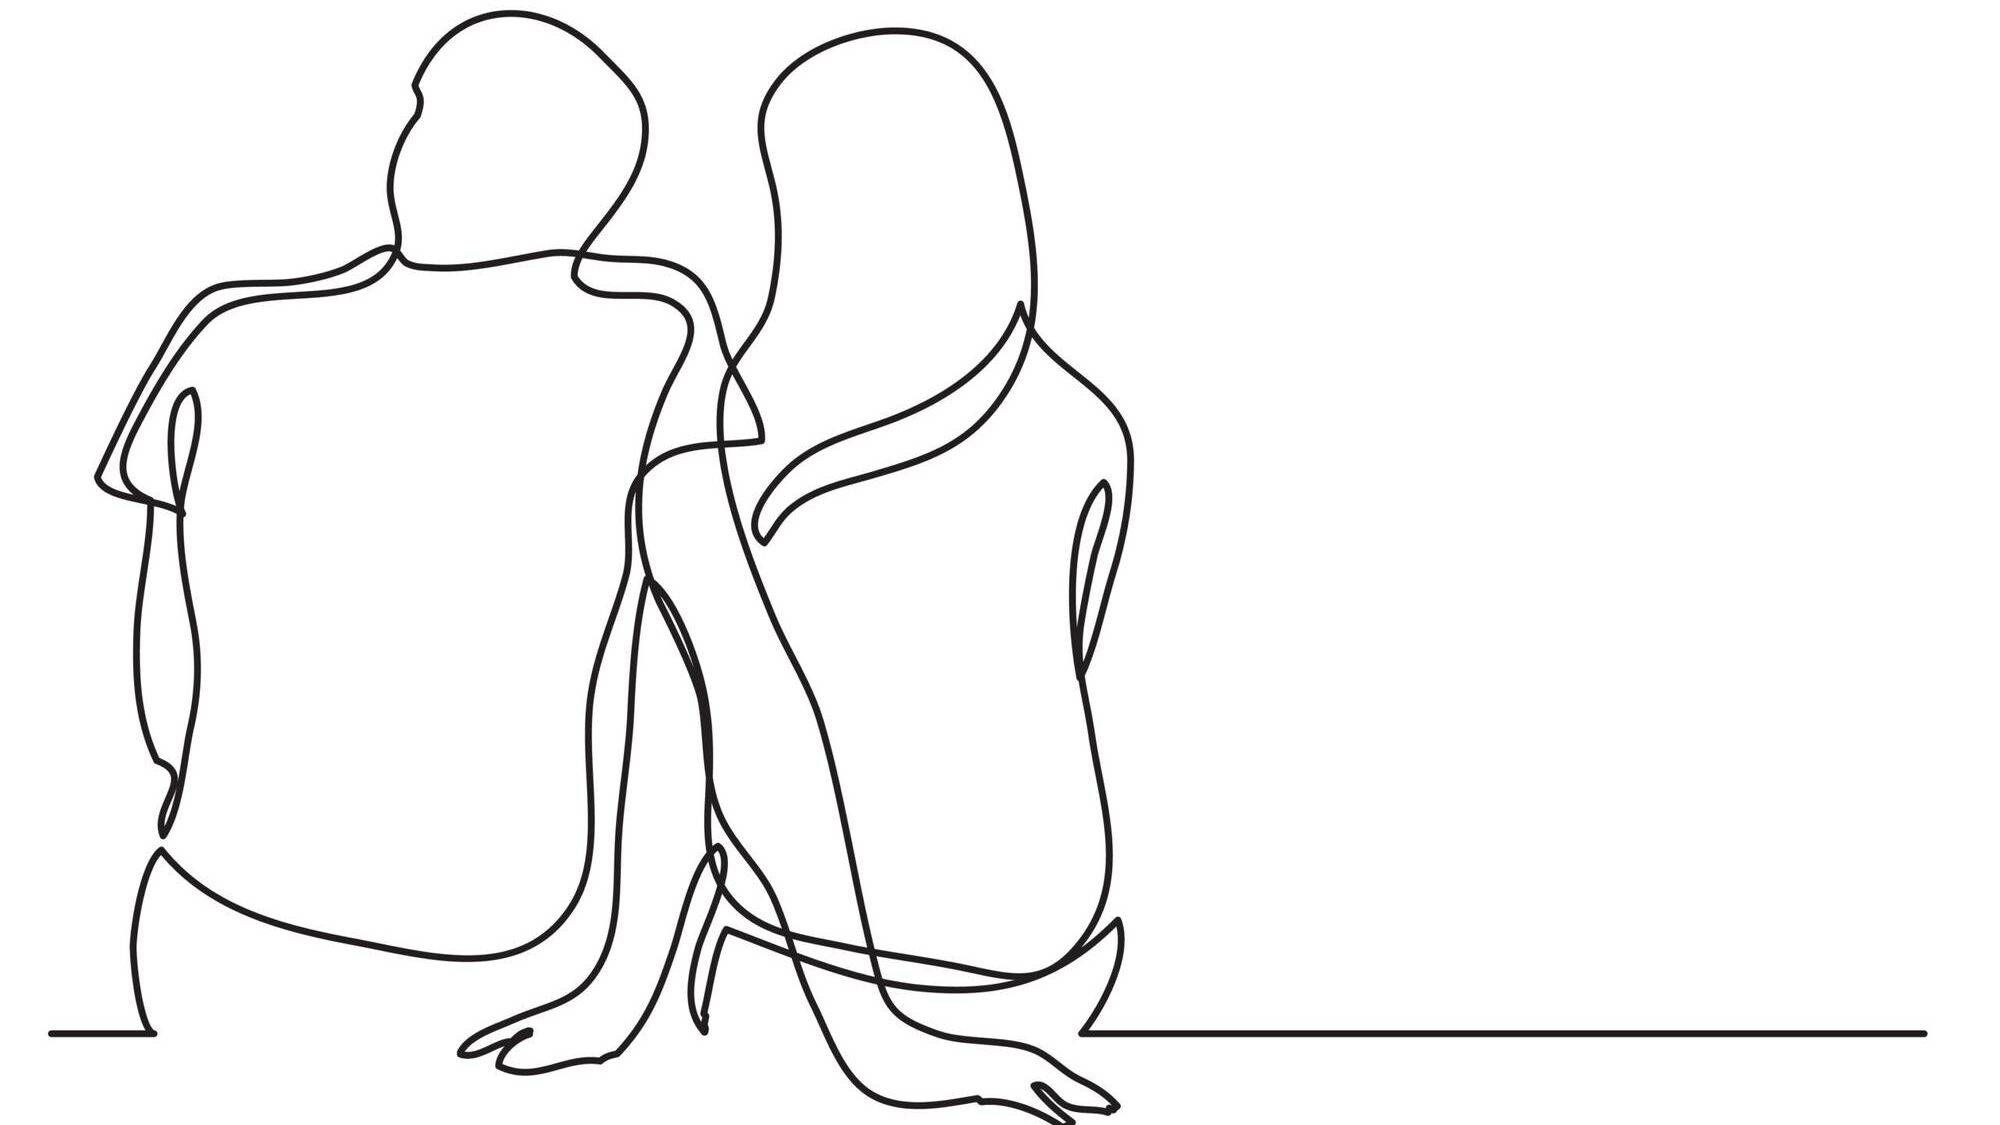 Line drawing illustration of a couple sitting next two each other. Age gap, love, Rewire, PBS